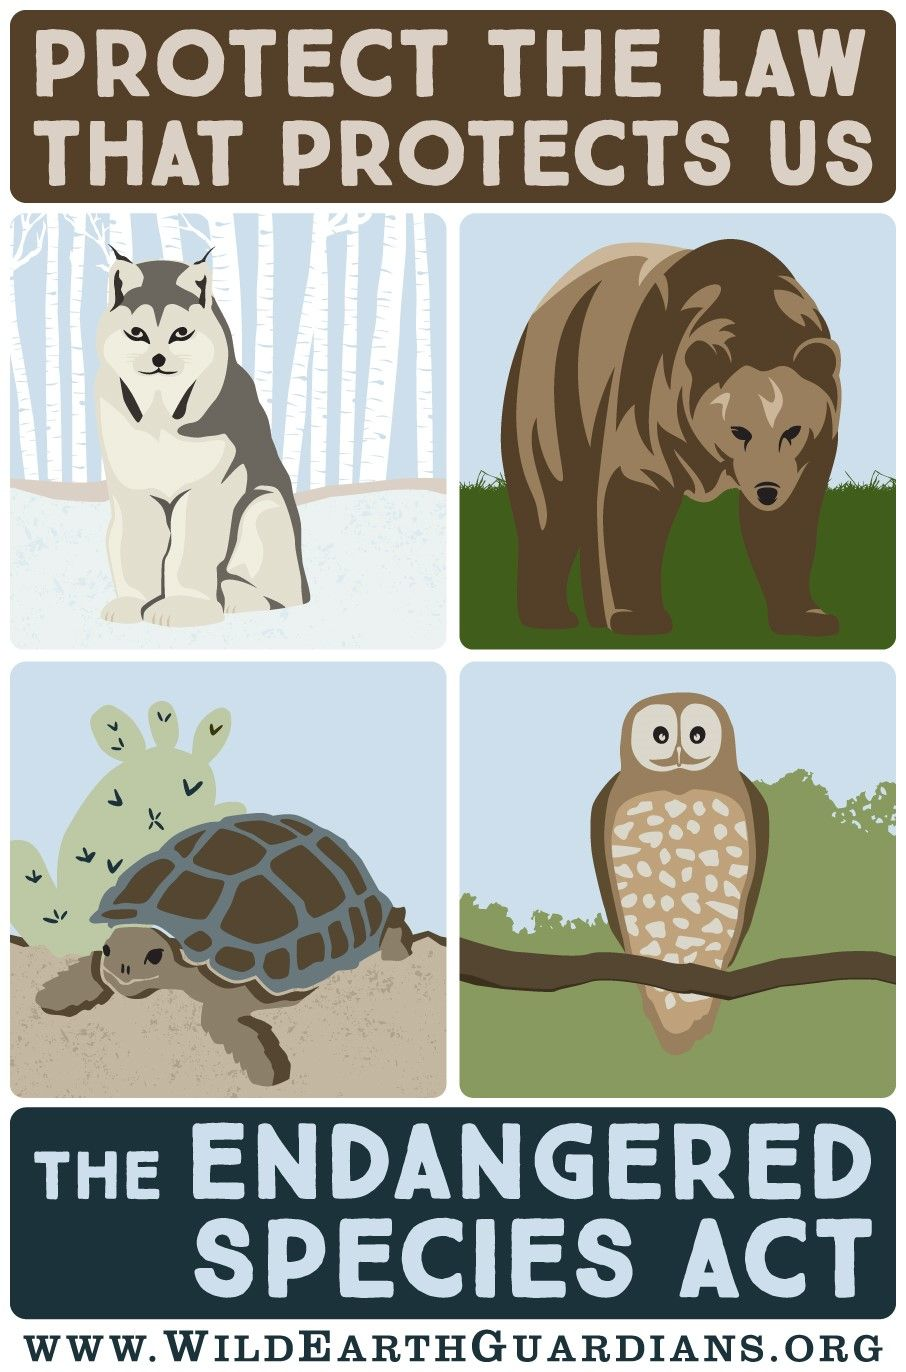 the endangered species act is our country's most essential